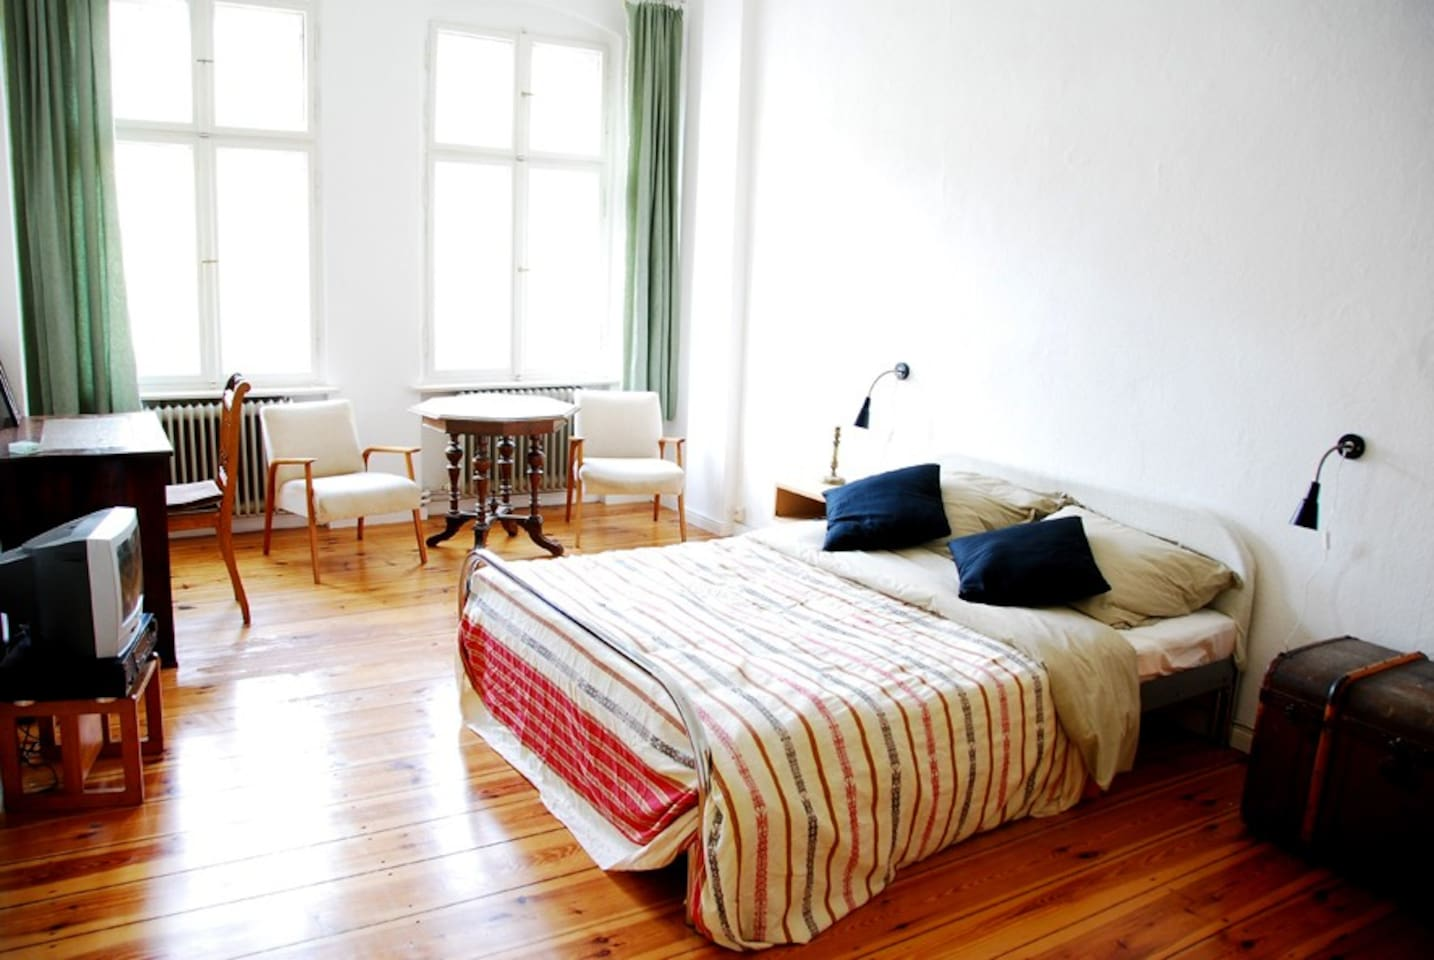 Cozy Apt close to central metro station: Get anywhere in no time!